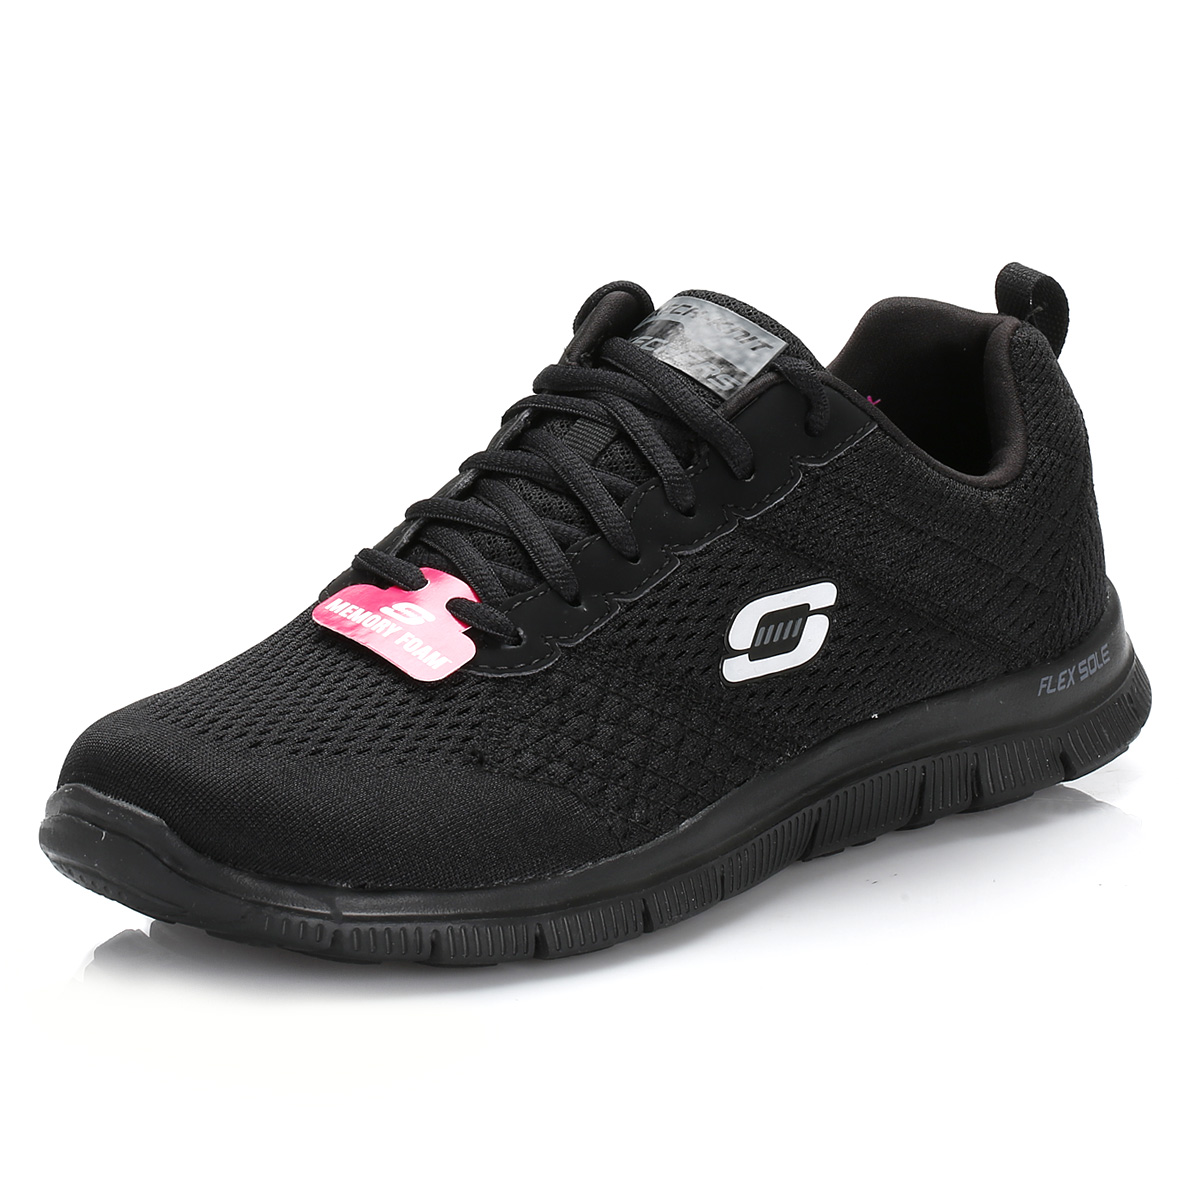 skechers obvious choice